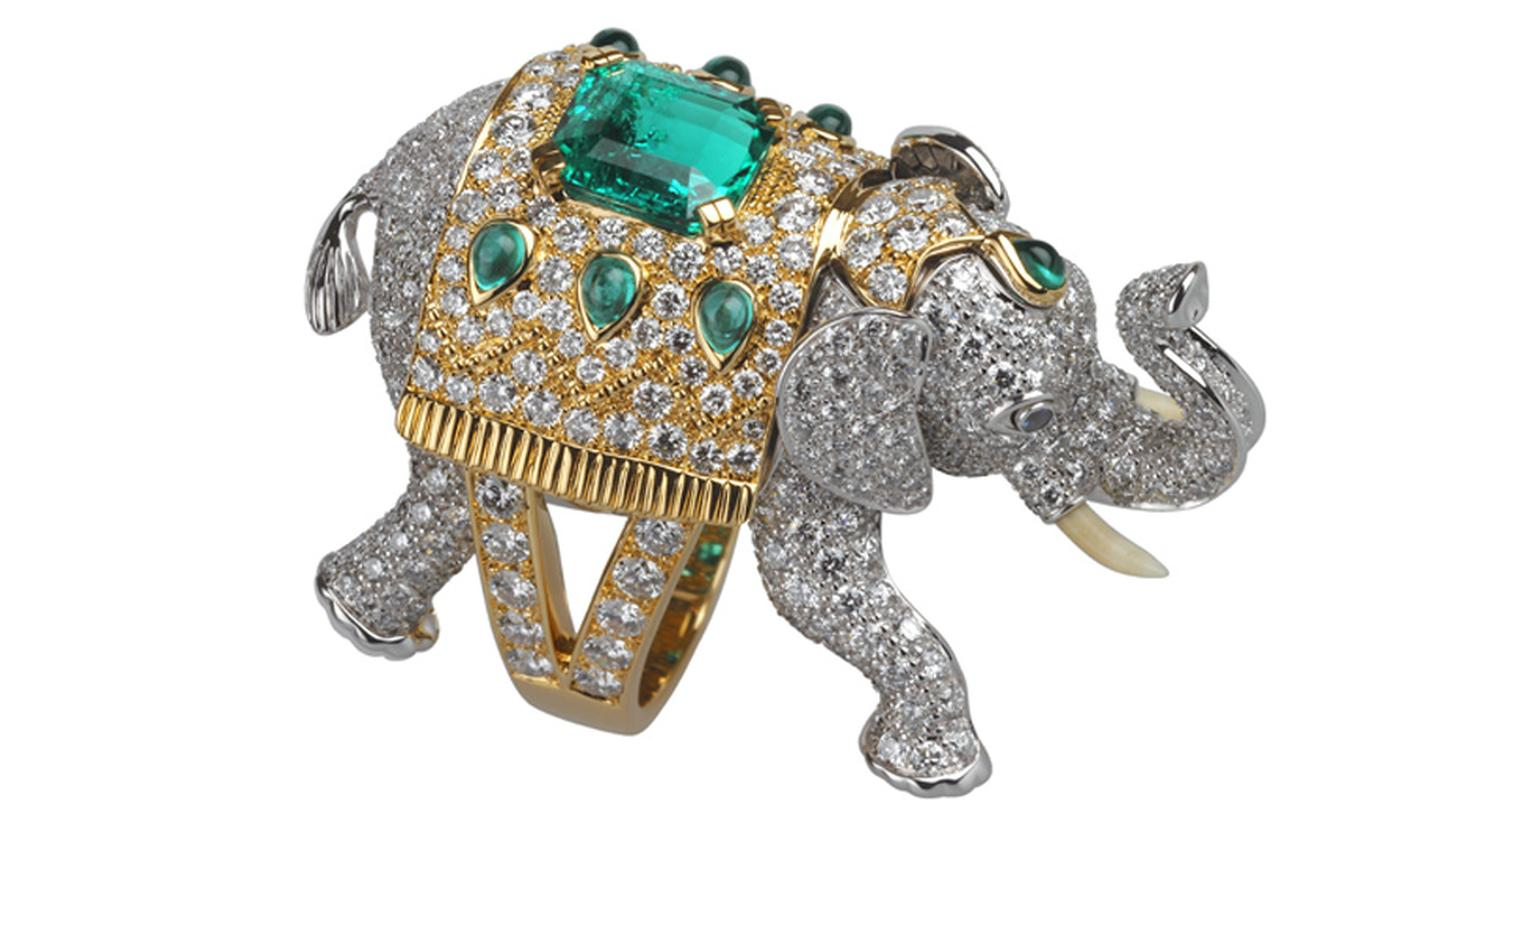 BOUCHERON. Hathi ring. White and yellow gold, emeralds, diamonds and sapphires. Price from £68,500.